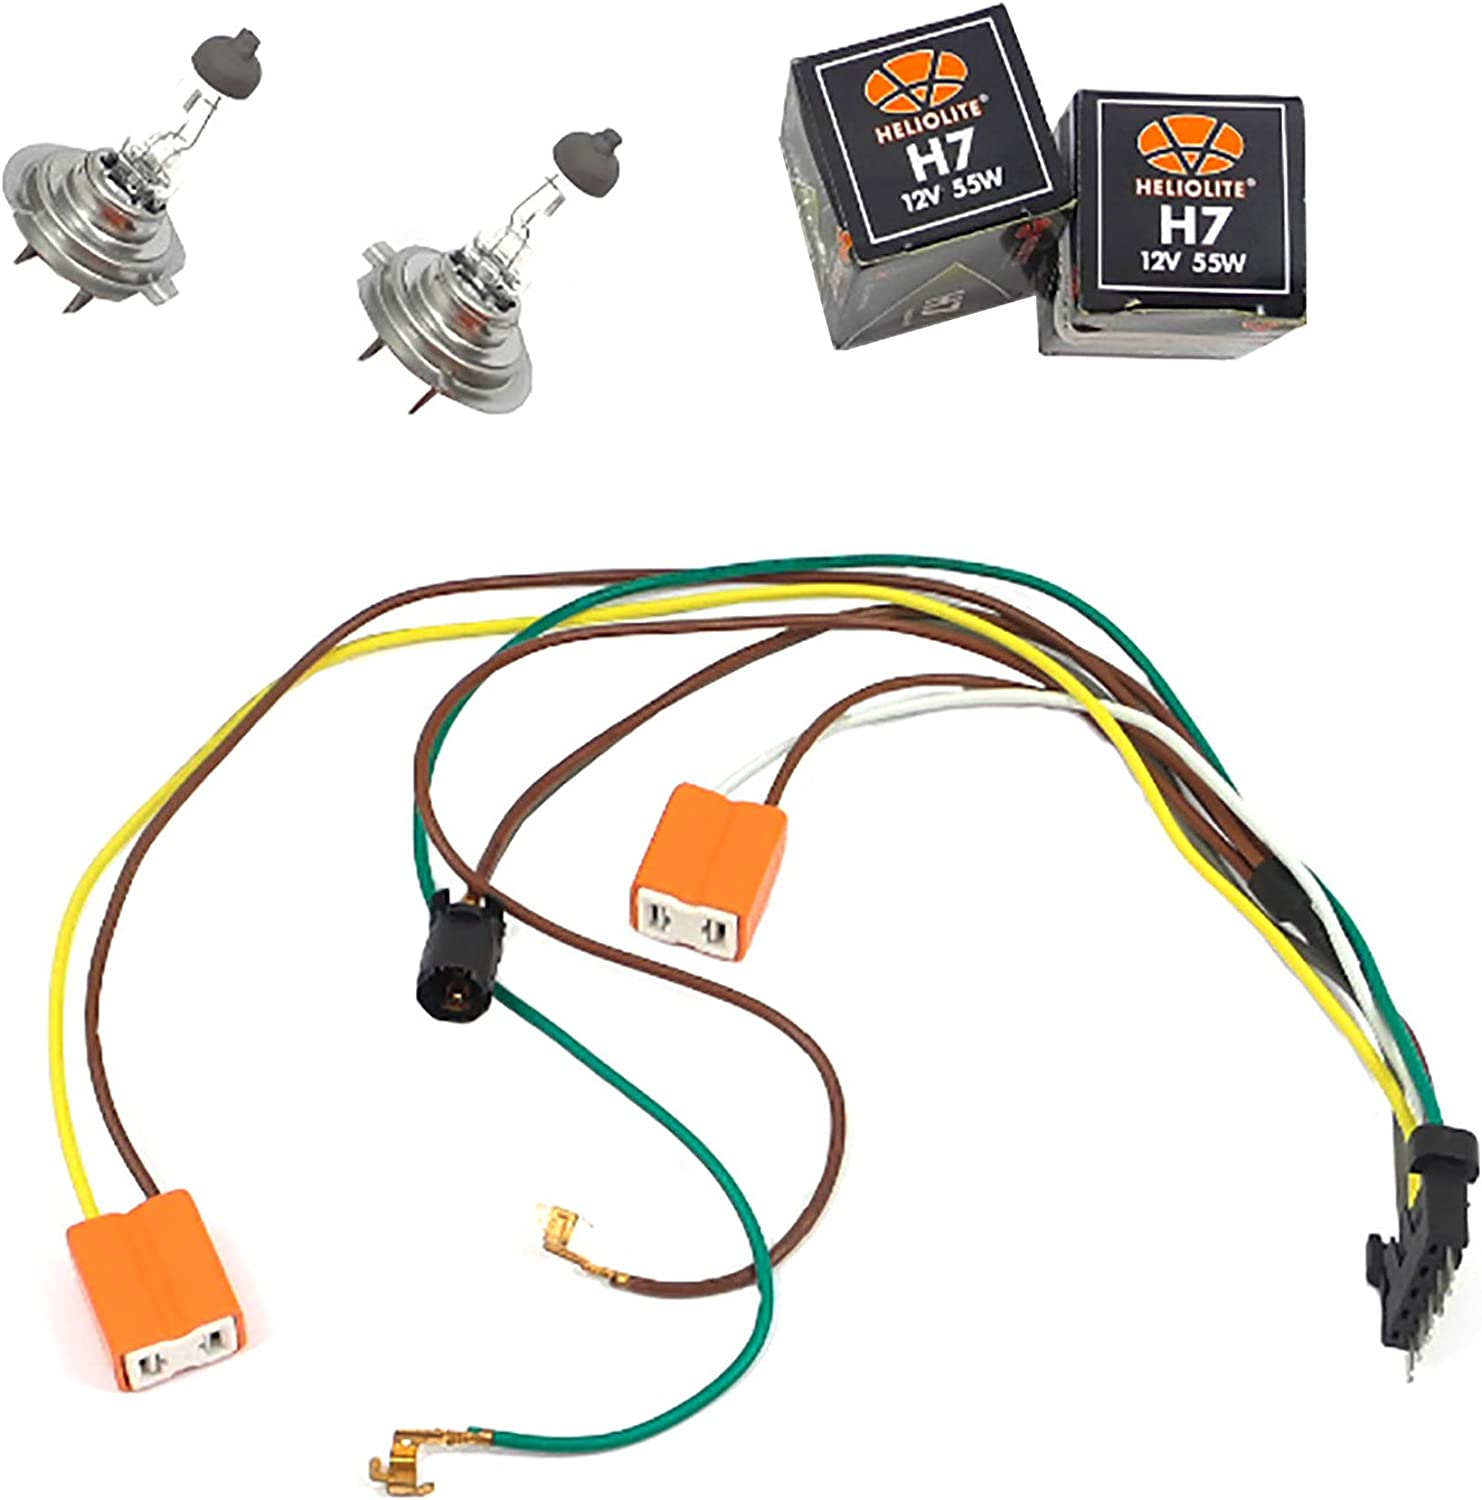 benz c32 engine wiring harness amazon com left or right headlight wiring harness and h7 55w  left or right headlight wiring harness